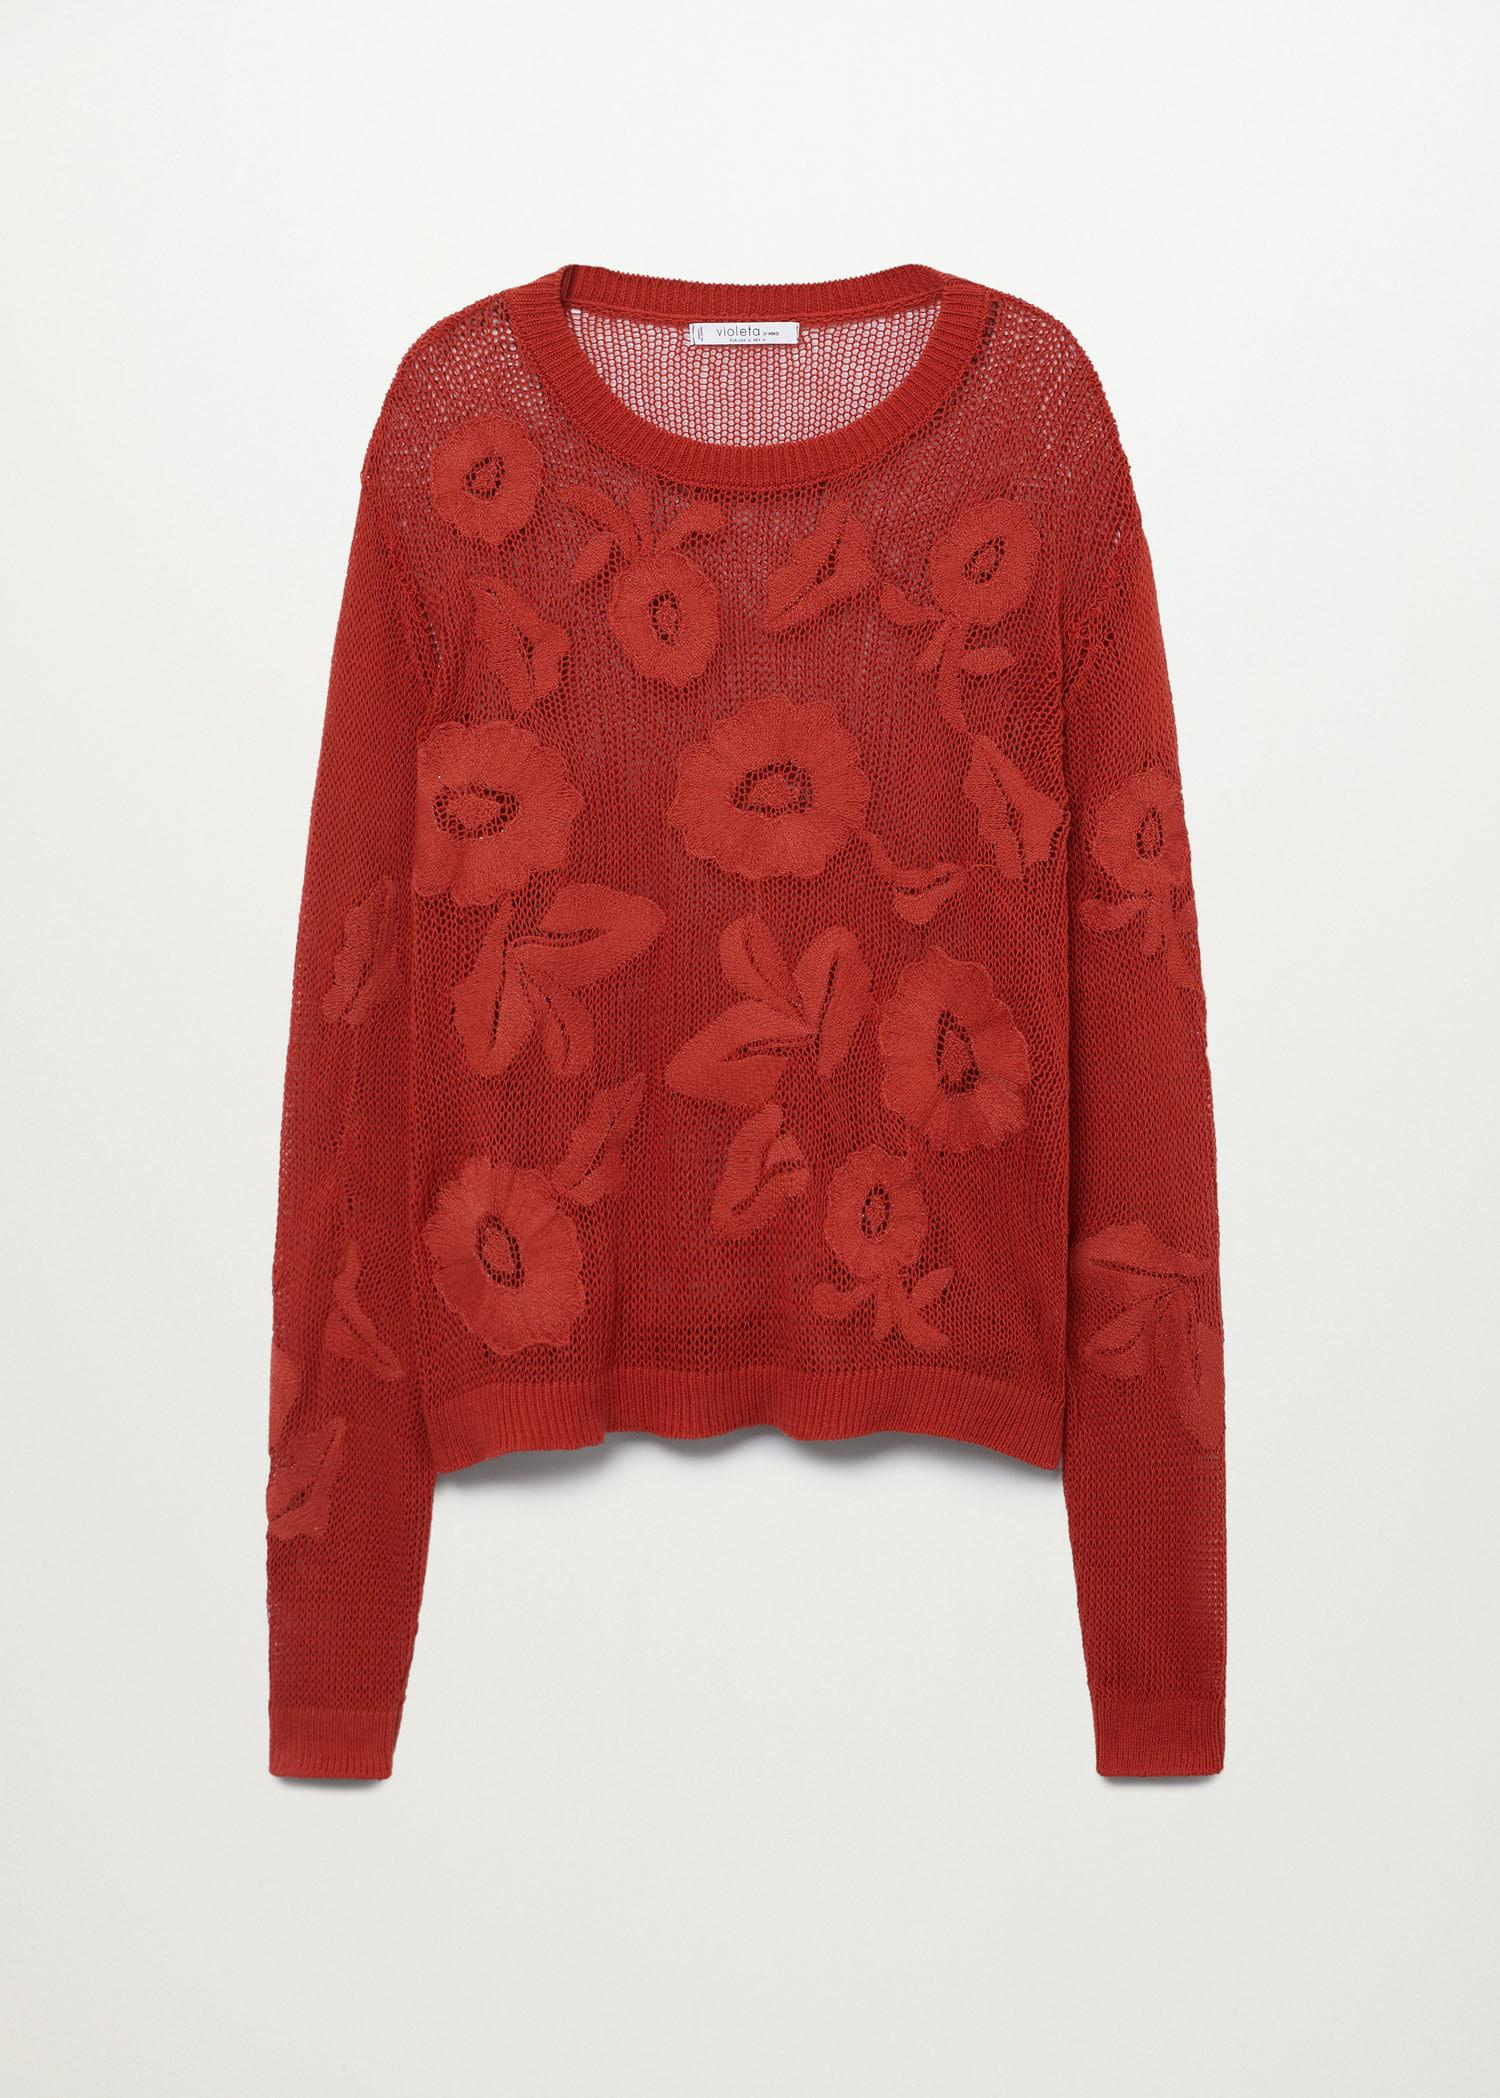 Flower embroidered sweater 7